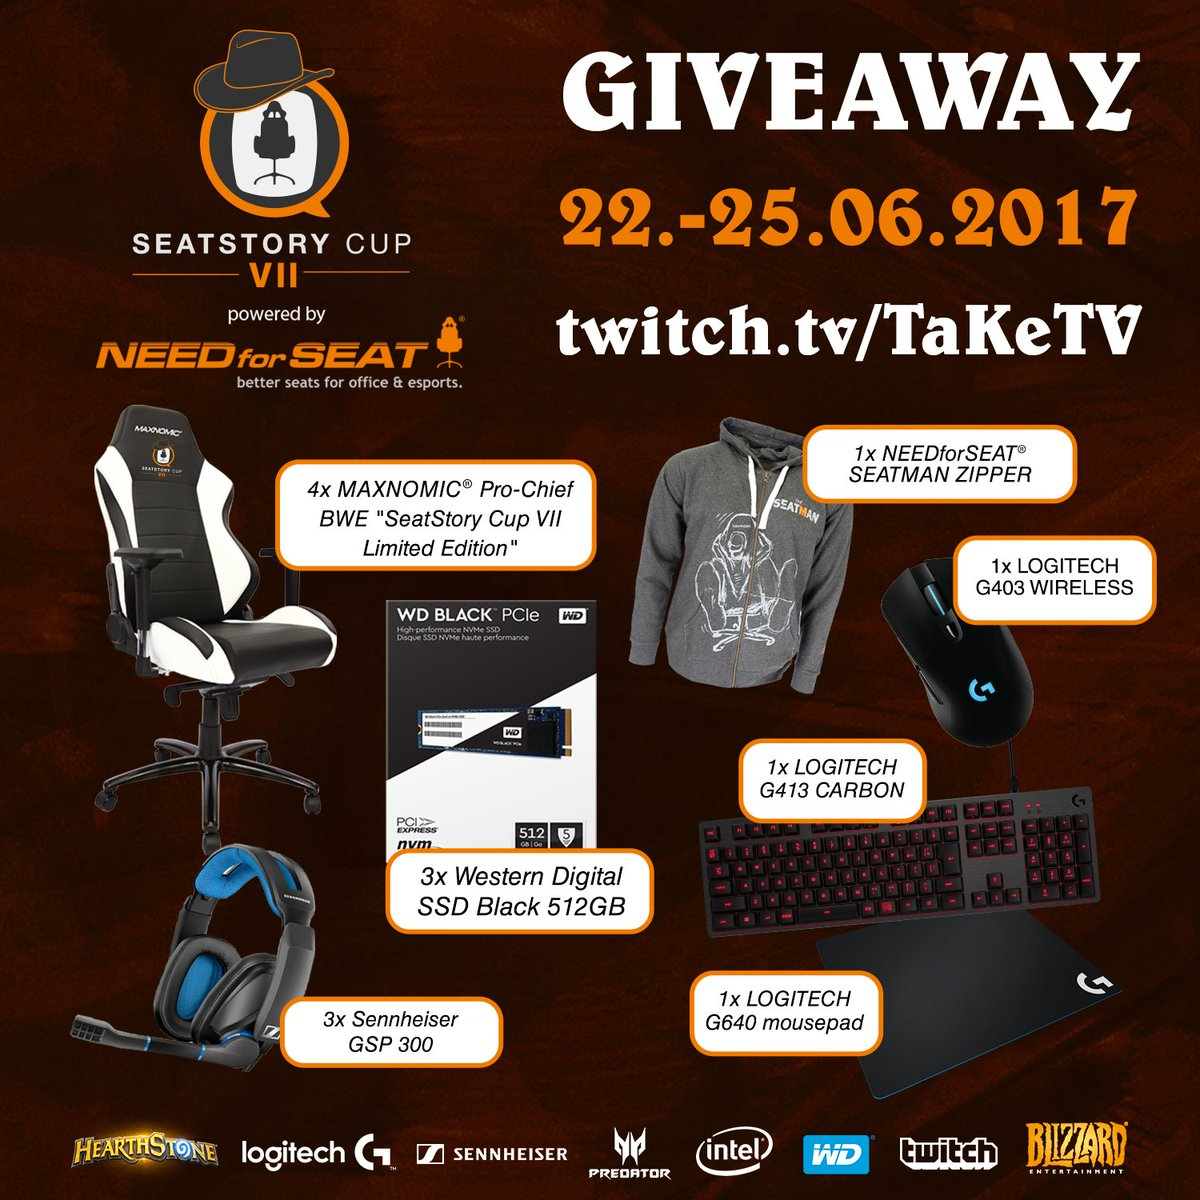 Make sure to participate in the #SSC7 giveaway and win awesome prizes!  https://t.co/RaDi1GF8E3 https://t.co/sZSbh2m72Y